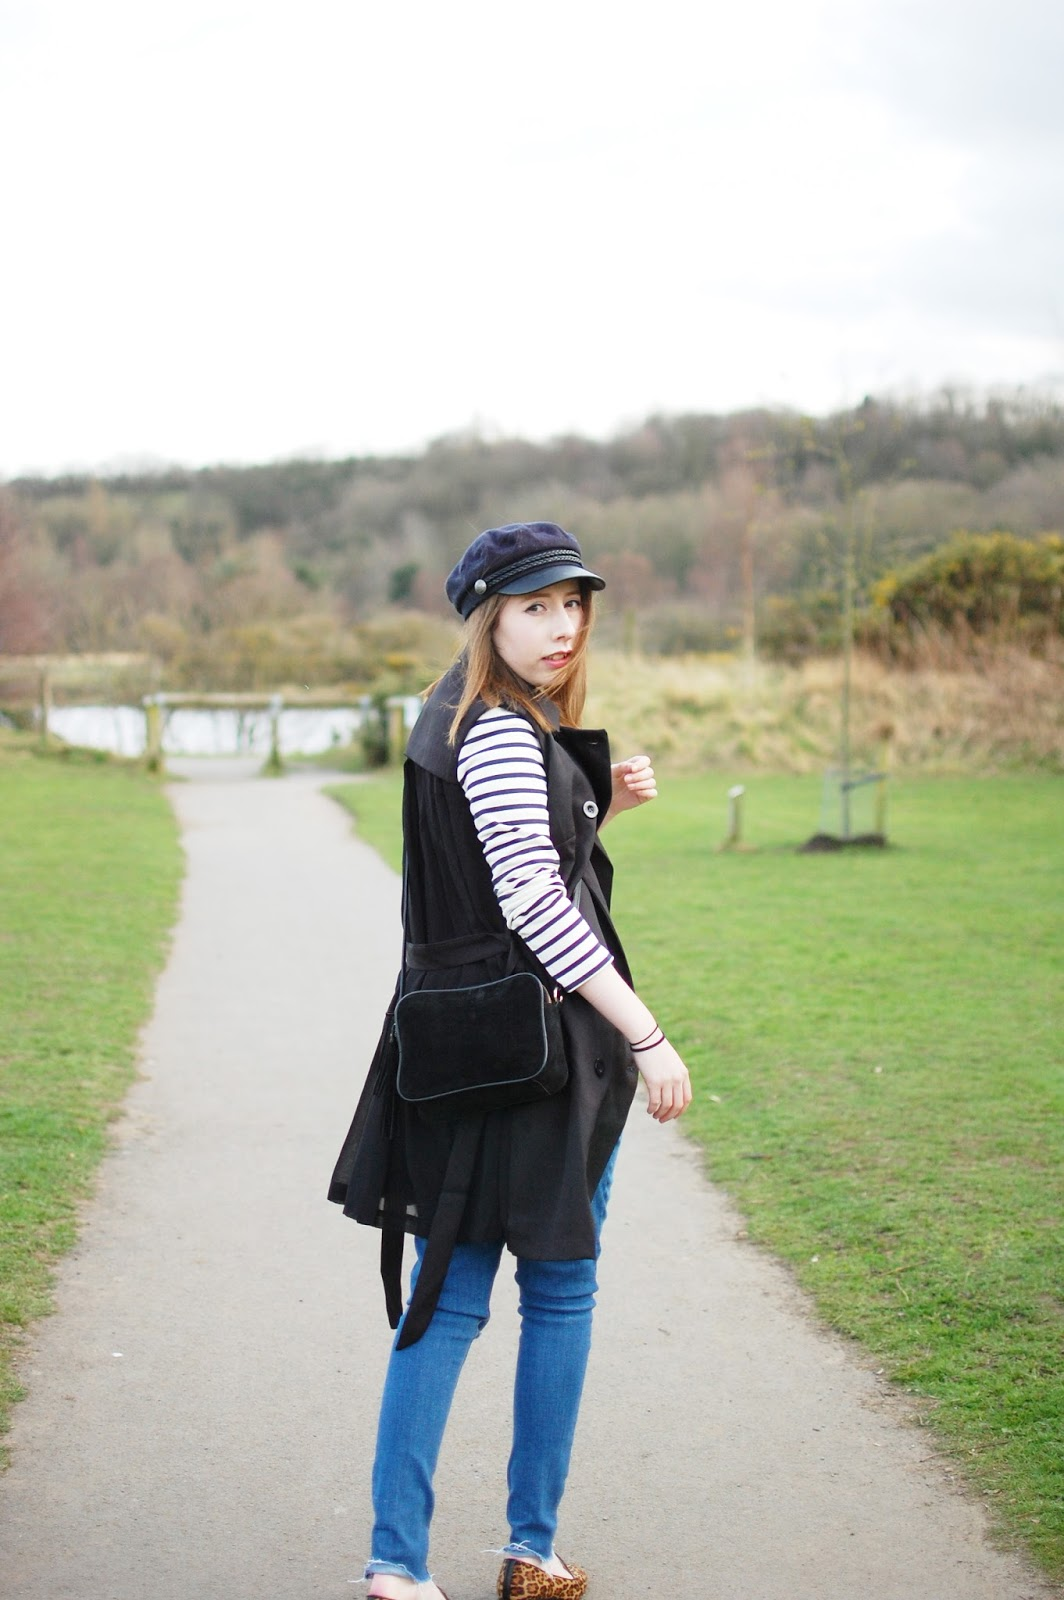 The Breton Stripe Top